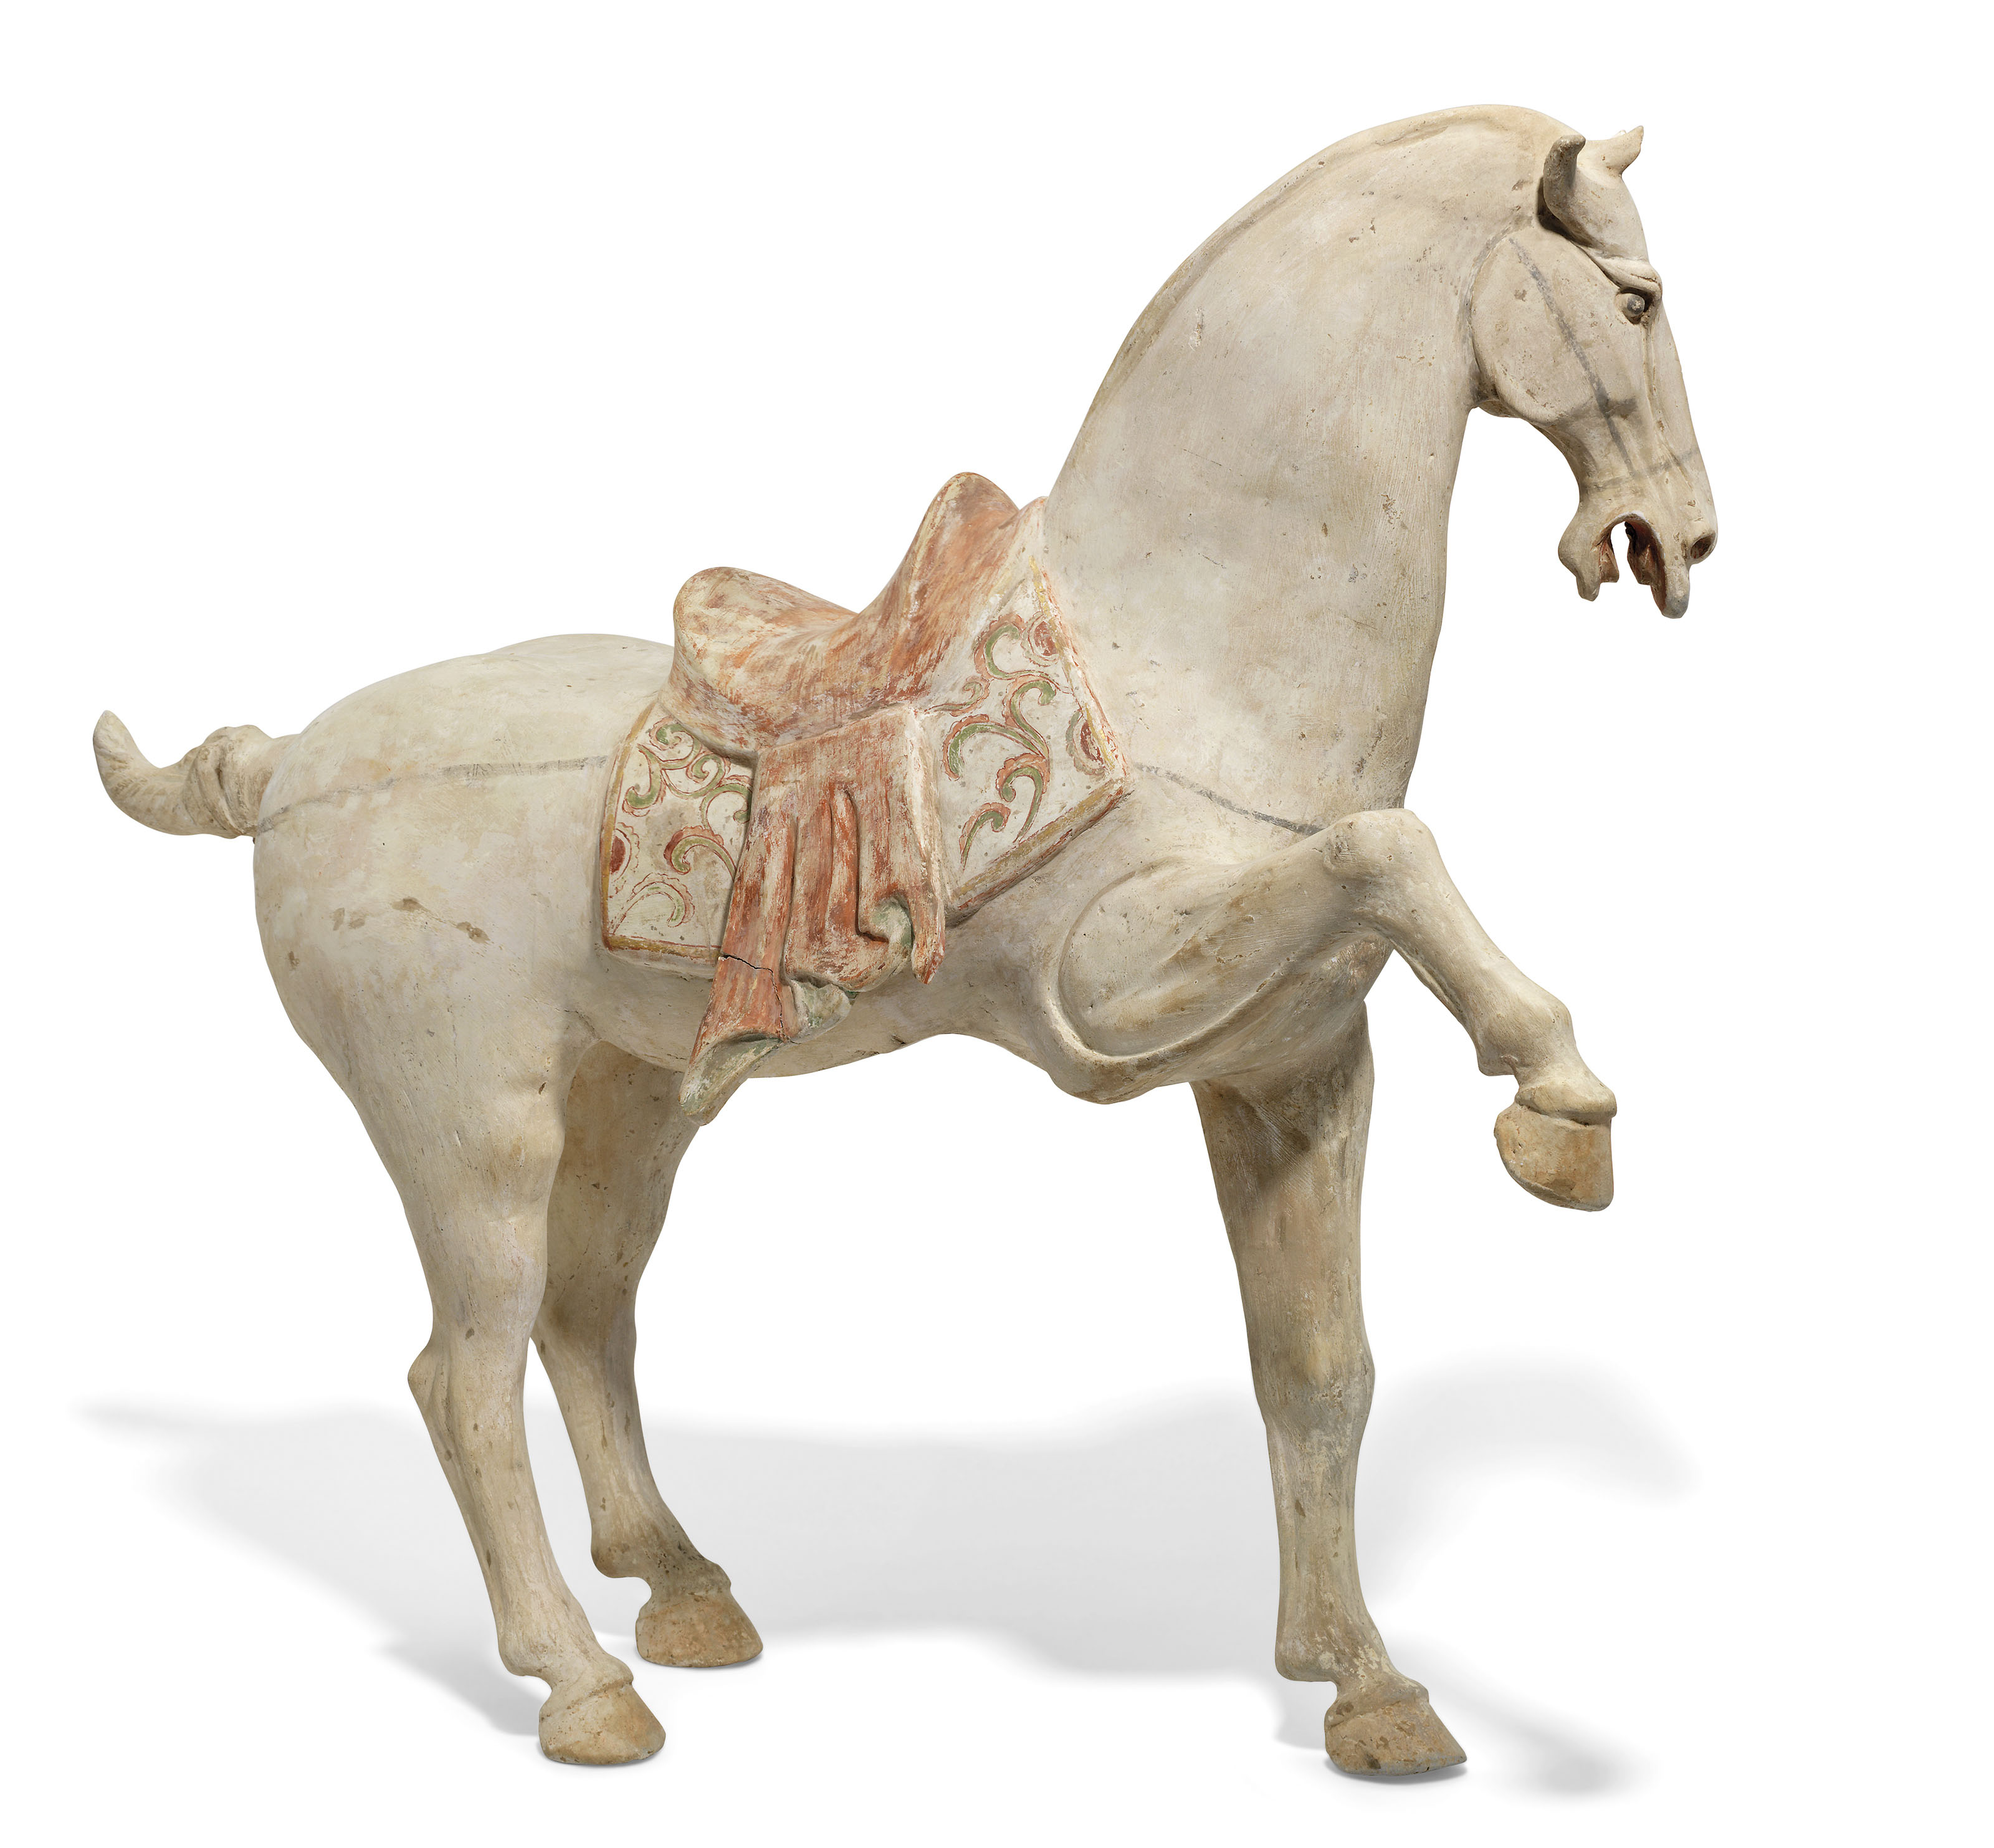 A LARGE PAINTED POTTERY FIGURE OF A PRANCING HORSE